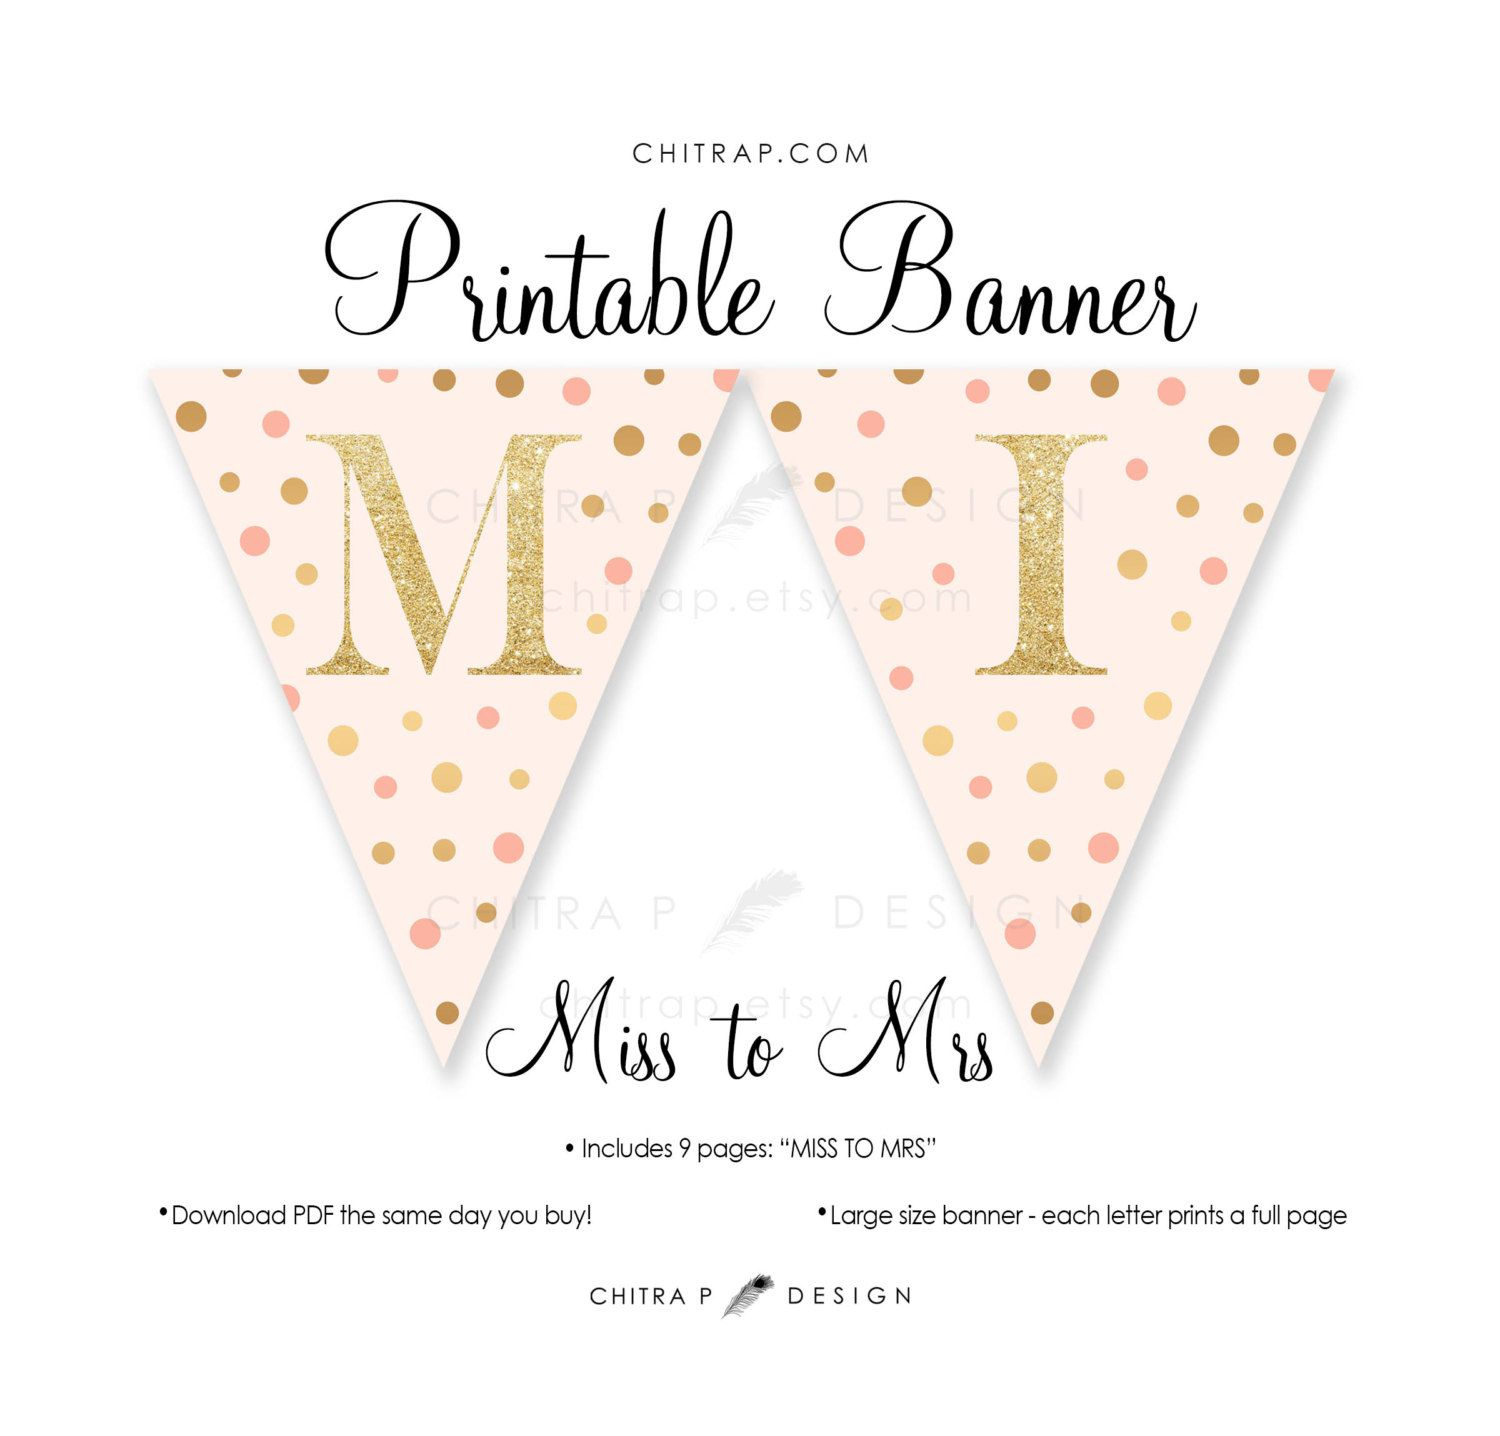 Miss To Mrs Banner - Printable, Bridal Shower Blush Pink Gold - Free Printable Miss To Mrs Banner